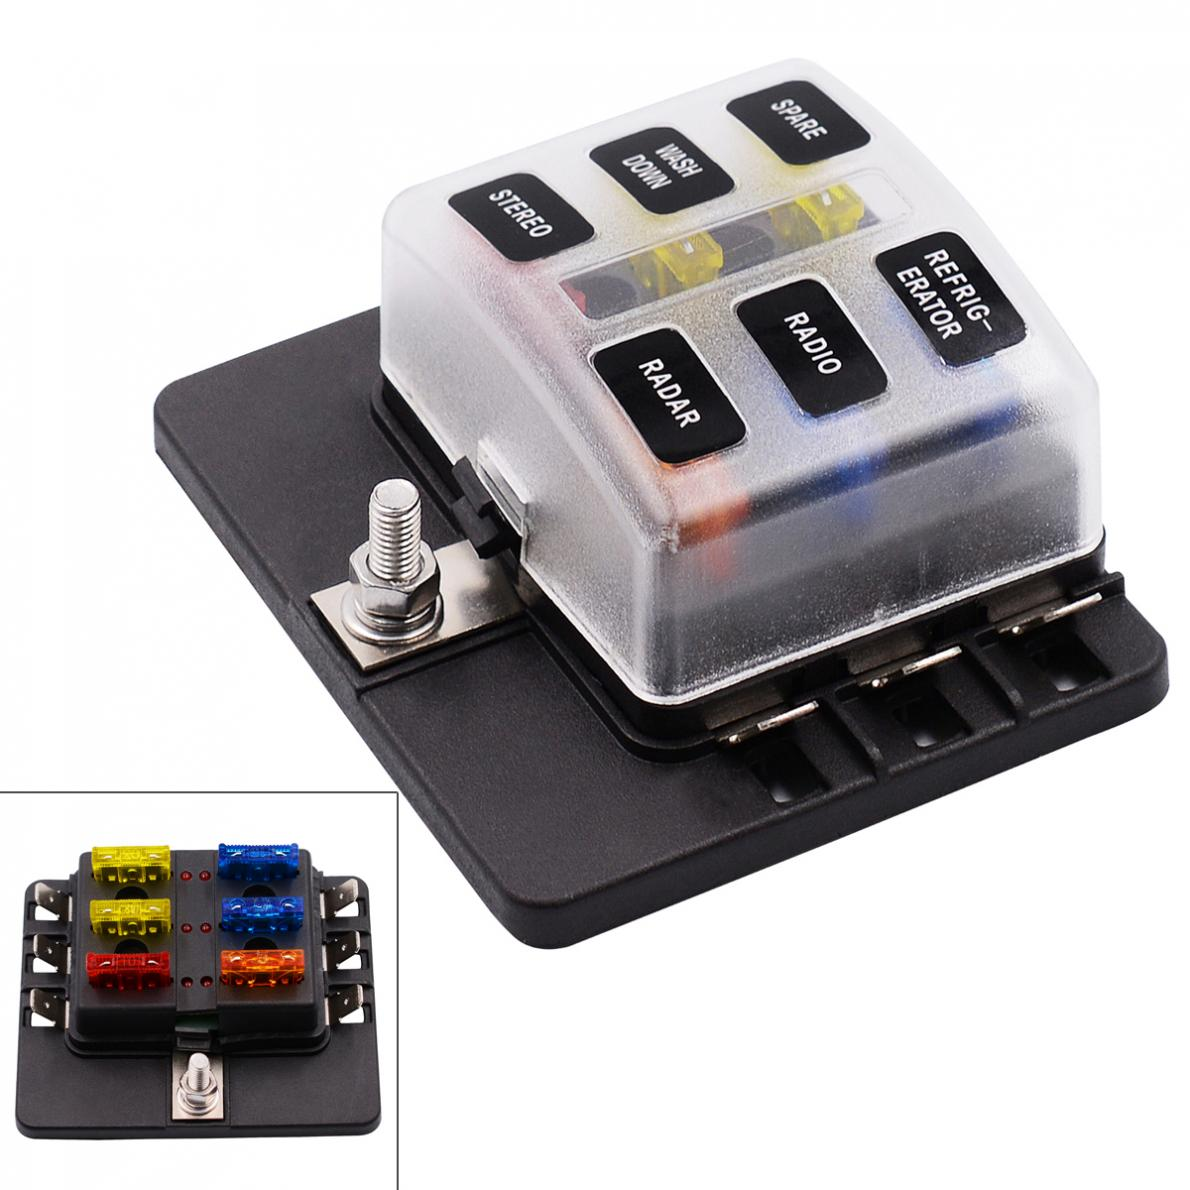 small resolution of 6 way 12v 24v blade fuse box holder with led warning light kit for car boat marine trike